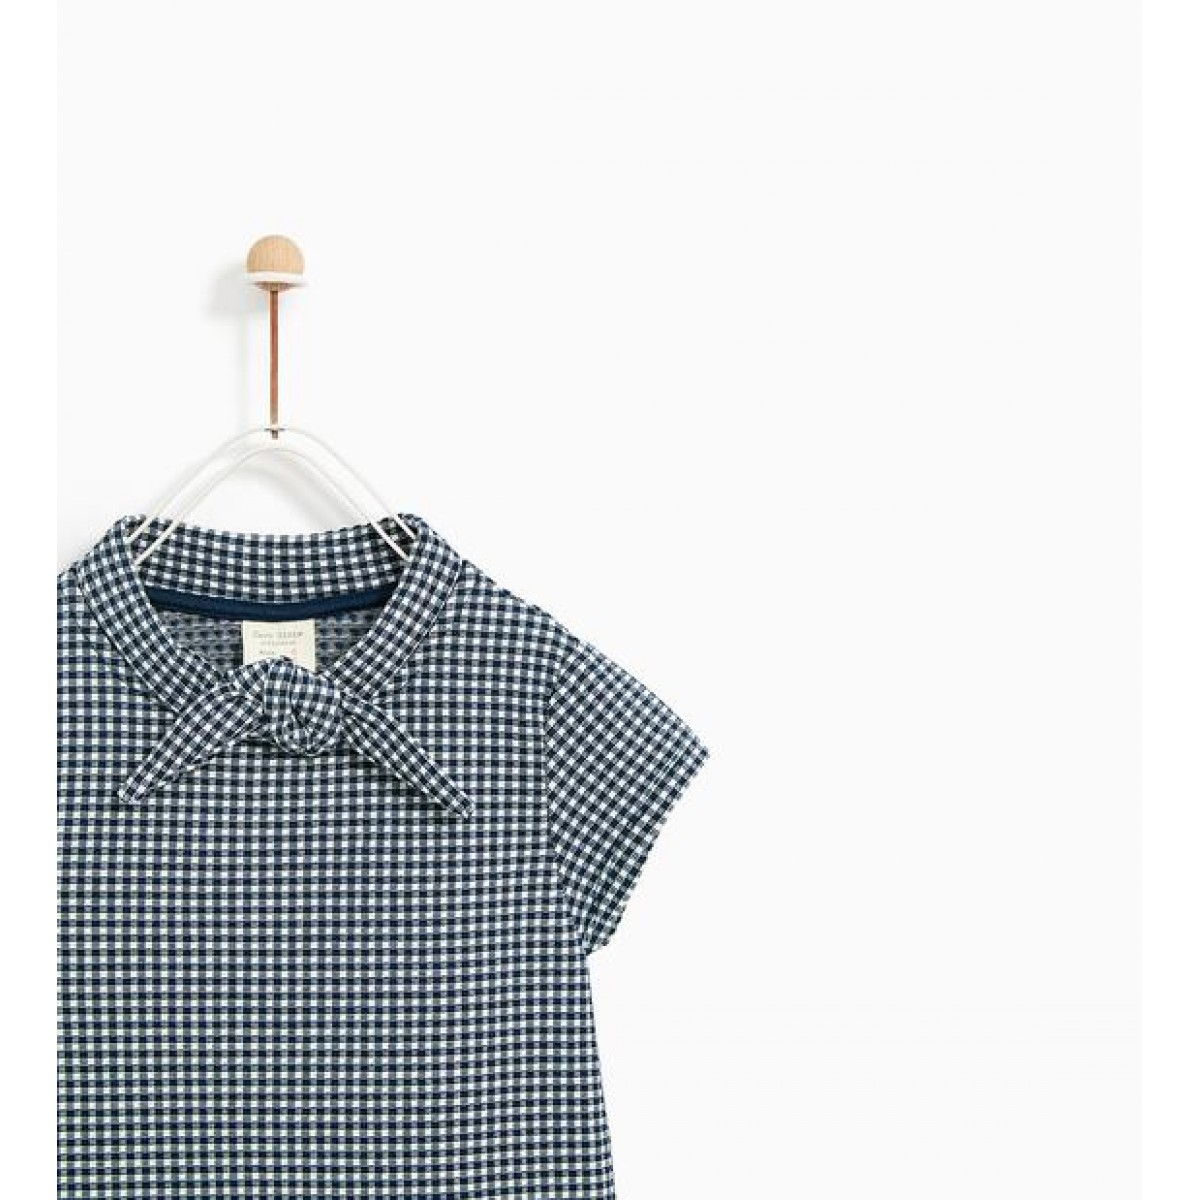 Zara Dress With A Bow At Neck